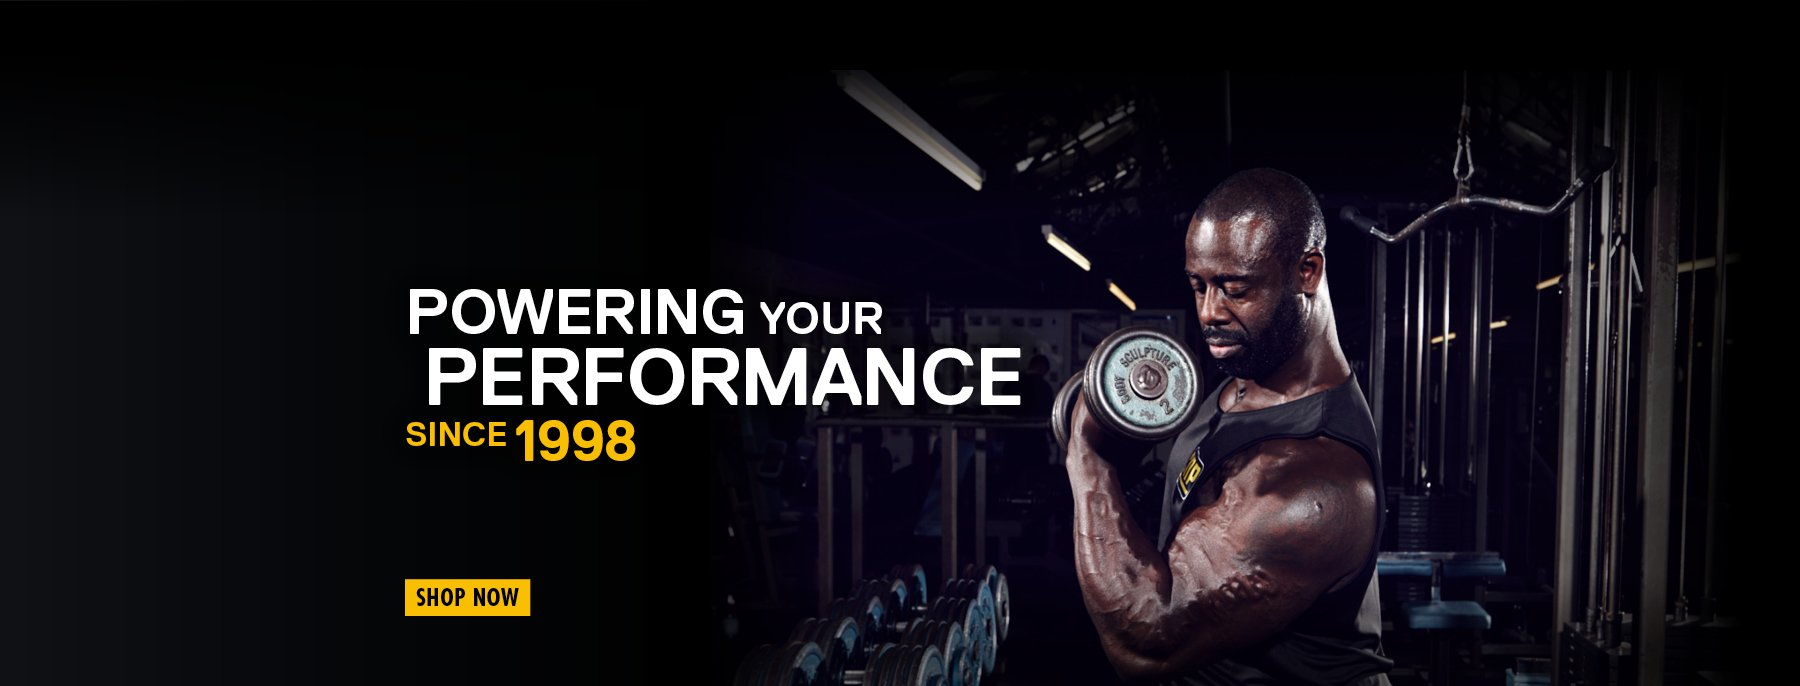 CNP Powering your performance